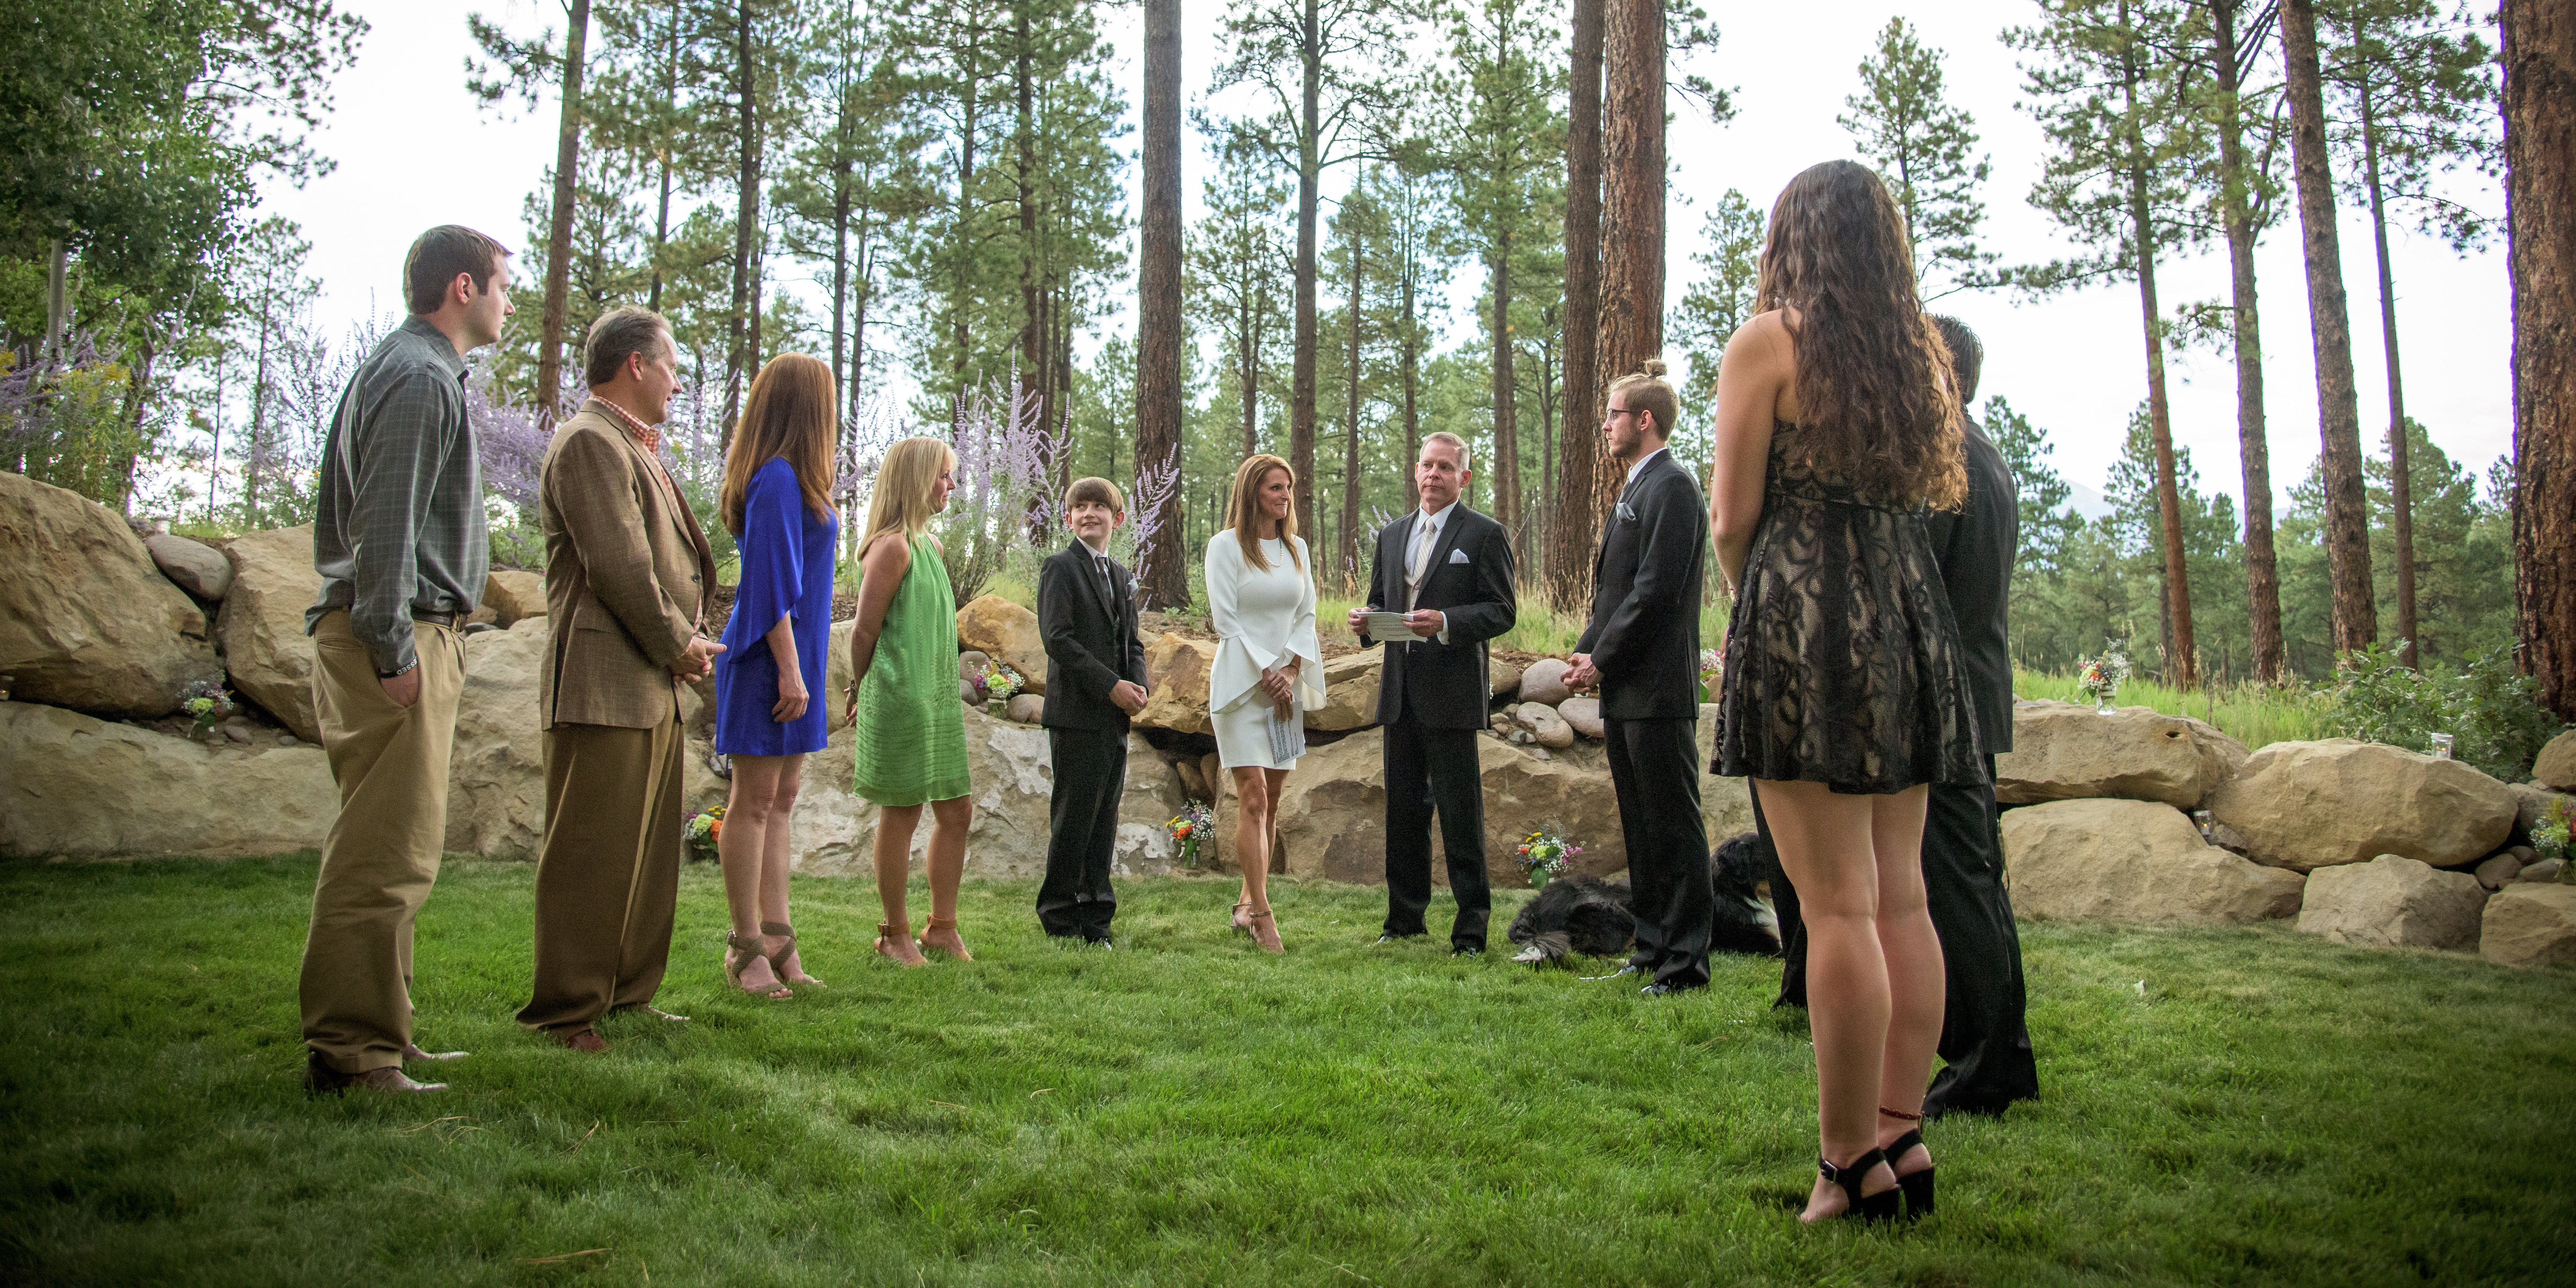 Durango Colorado Wedding Photographed by Allison Ragsdale Photography, Durango Professional Photographer. Colorado forest weddings.